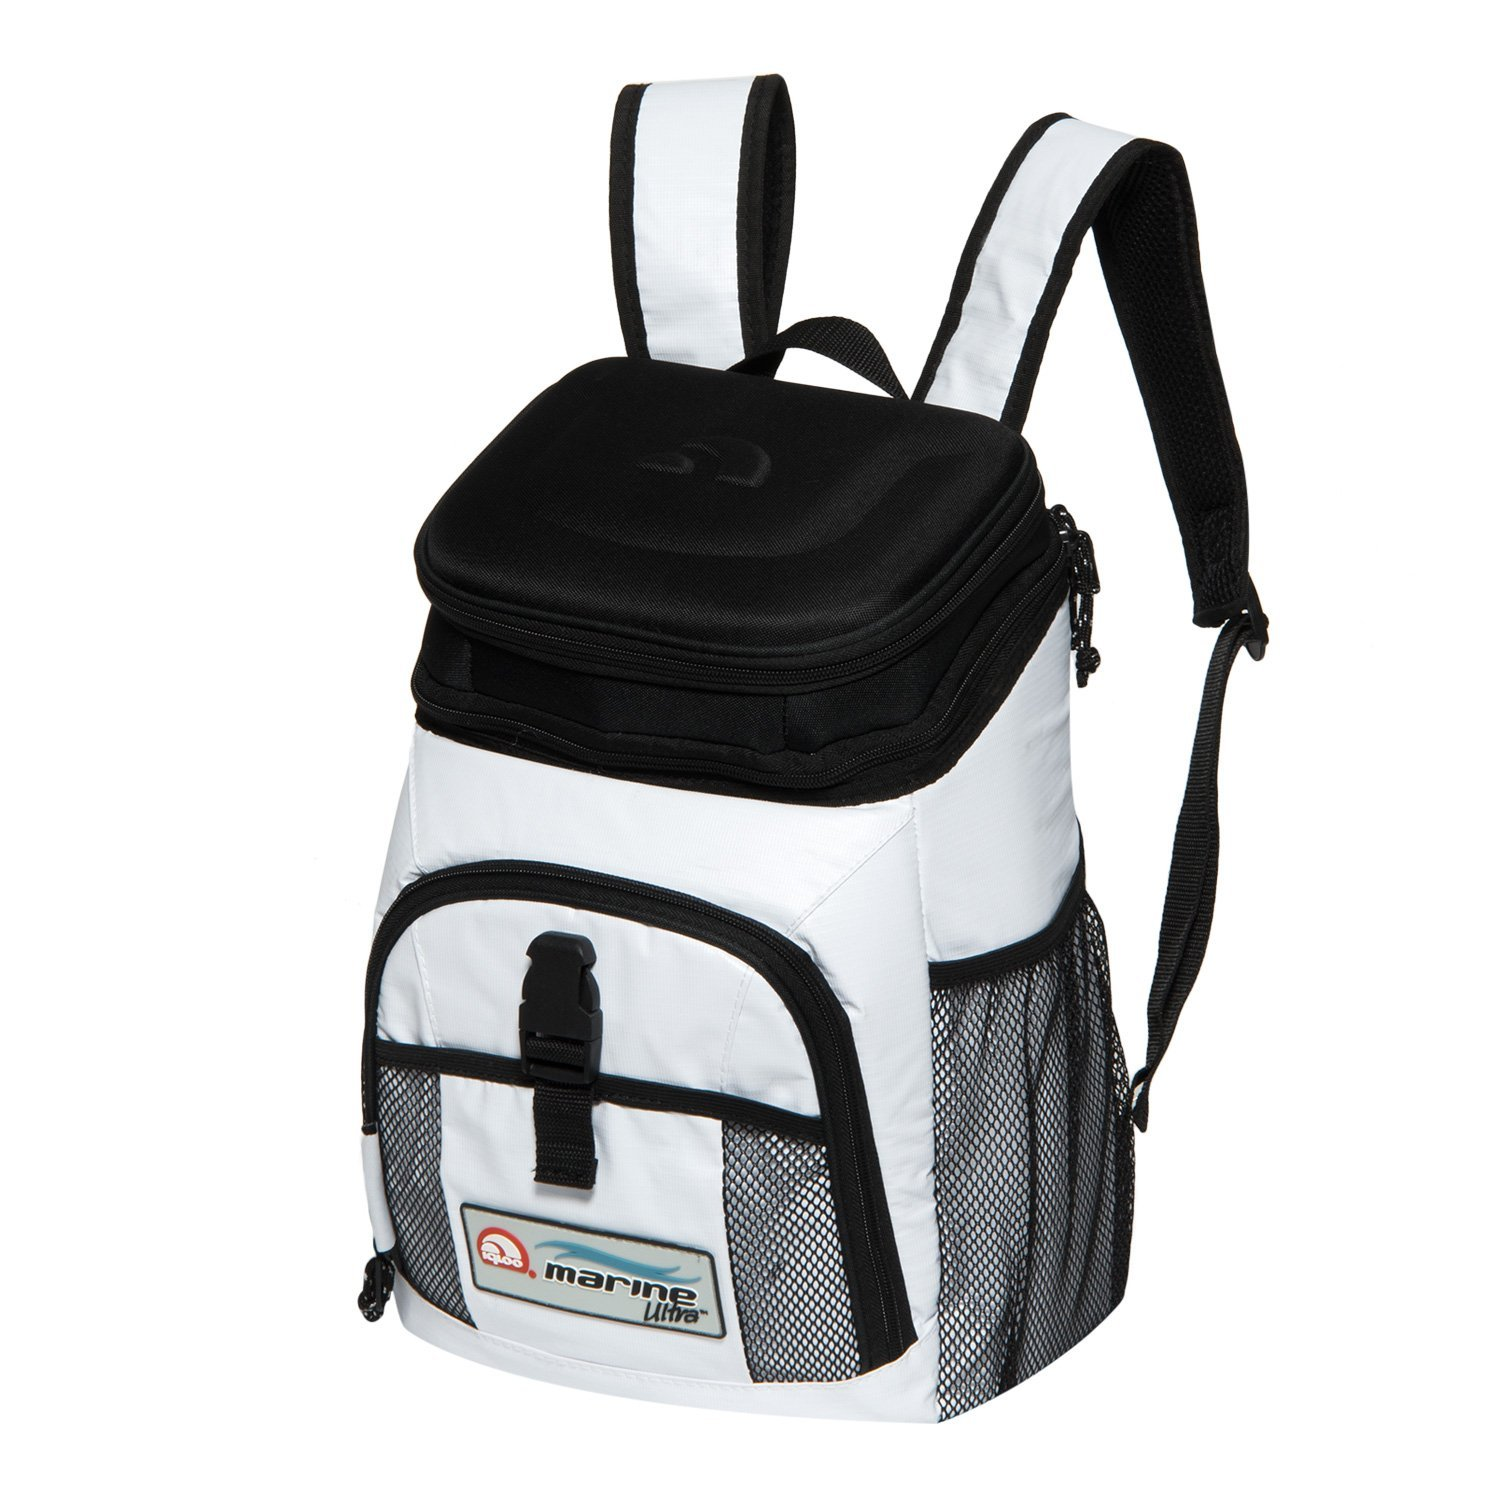 Igloo Marine Ultra Square Cooler Backpack